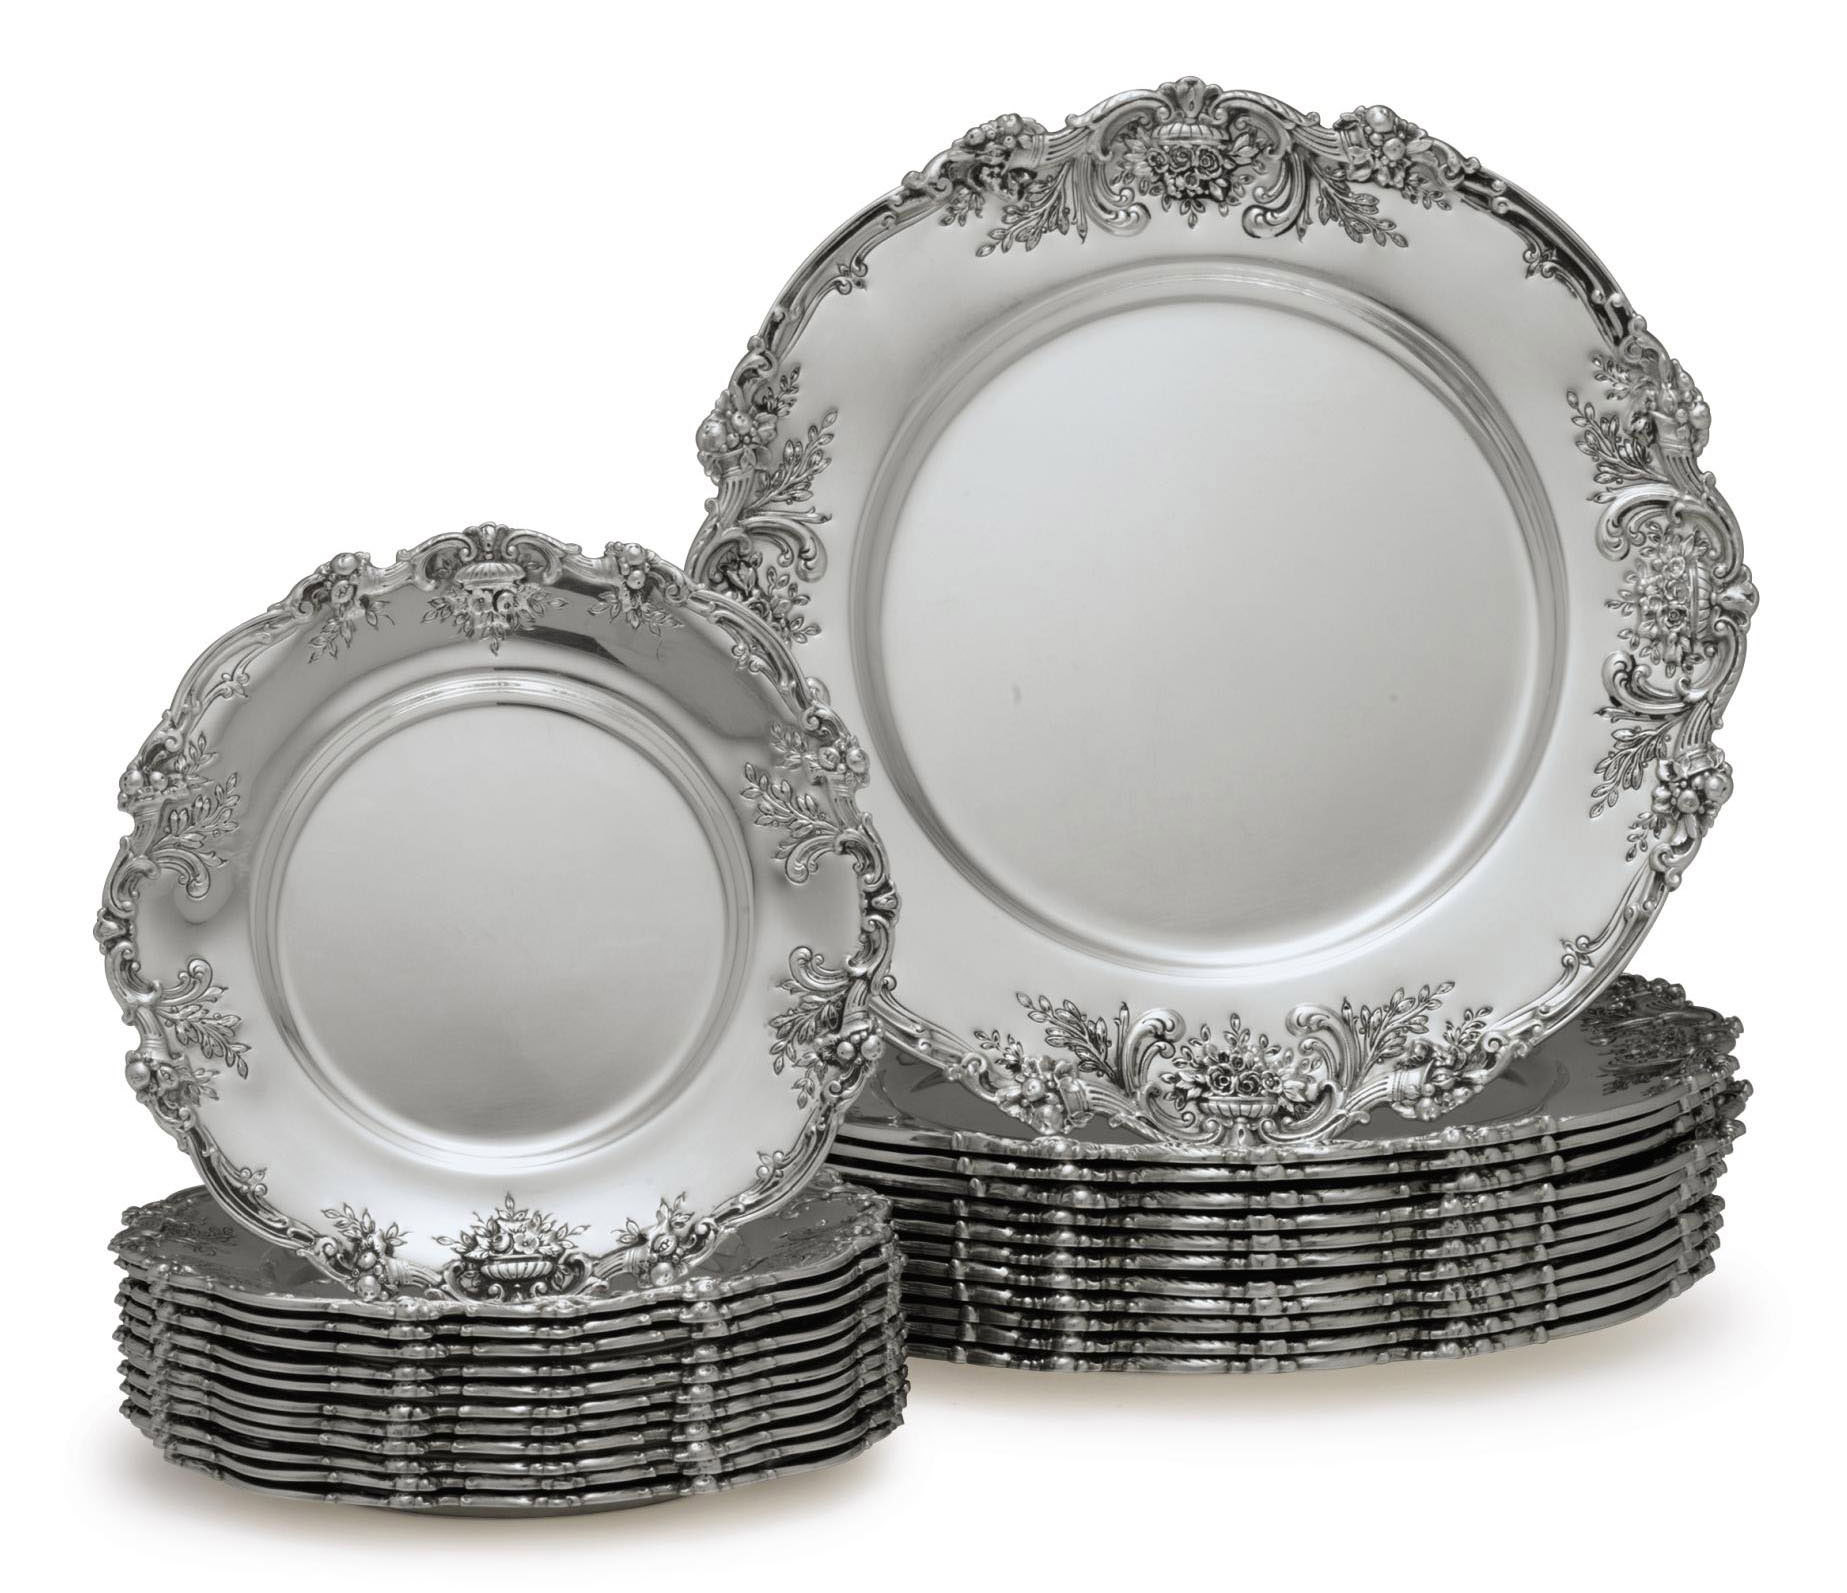 A SET OF TWELVE SILVER DINNER PLATES AND TWELVE SILVER BREAD PLATES